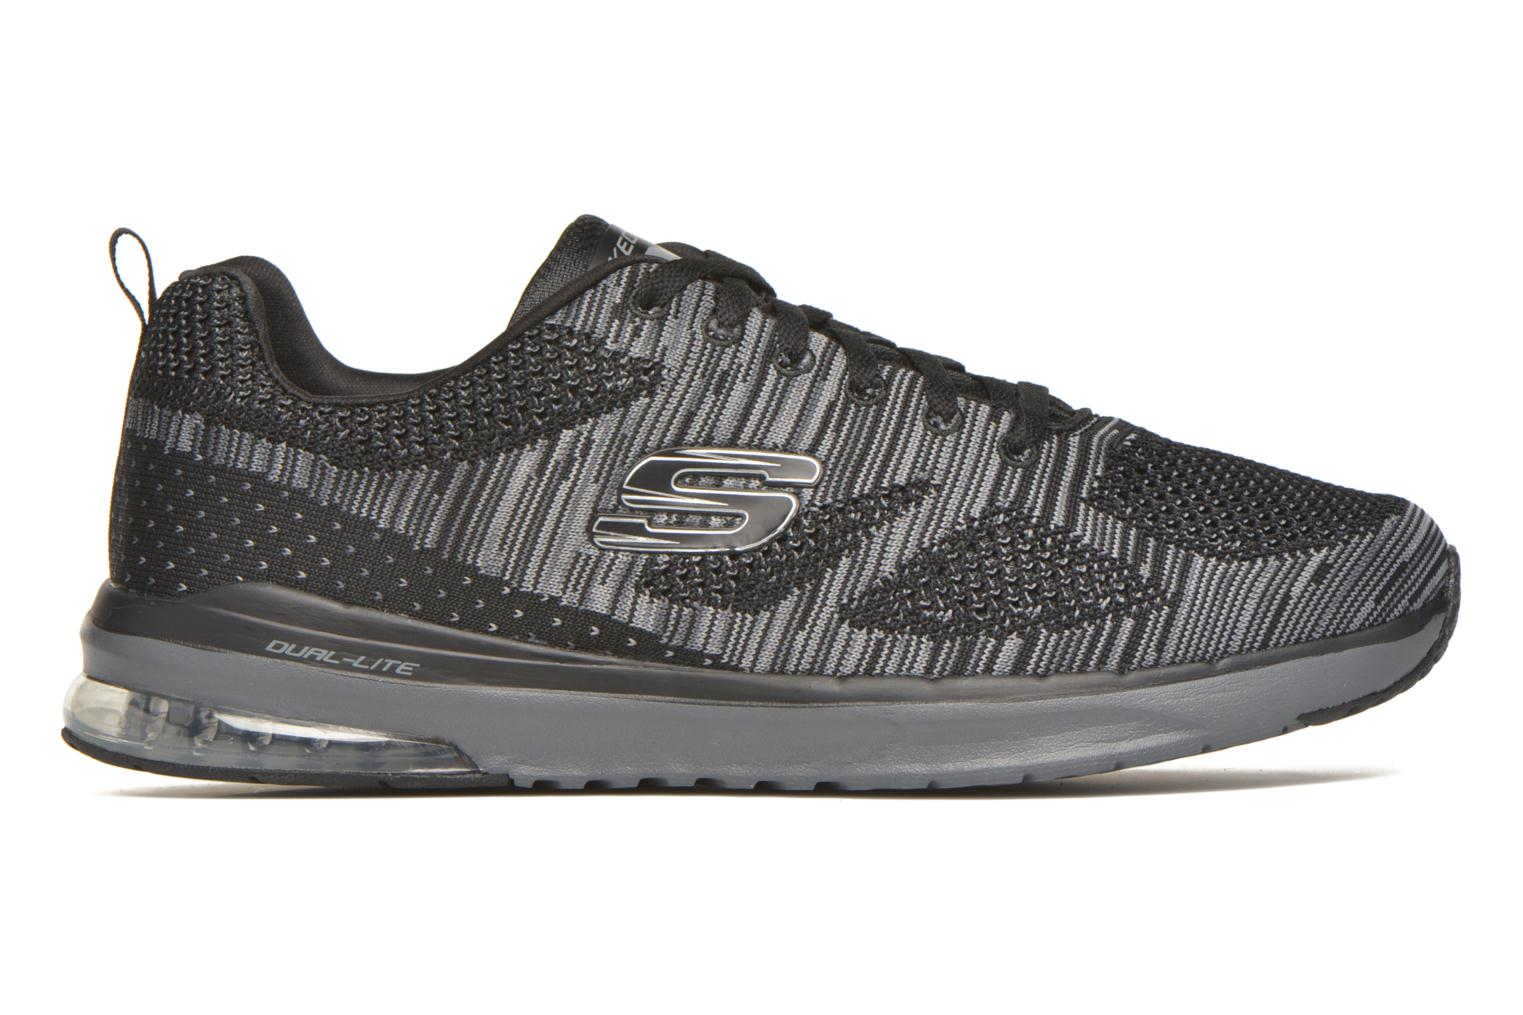 Skech-Air Infinity-R Black & Gray